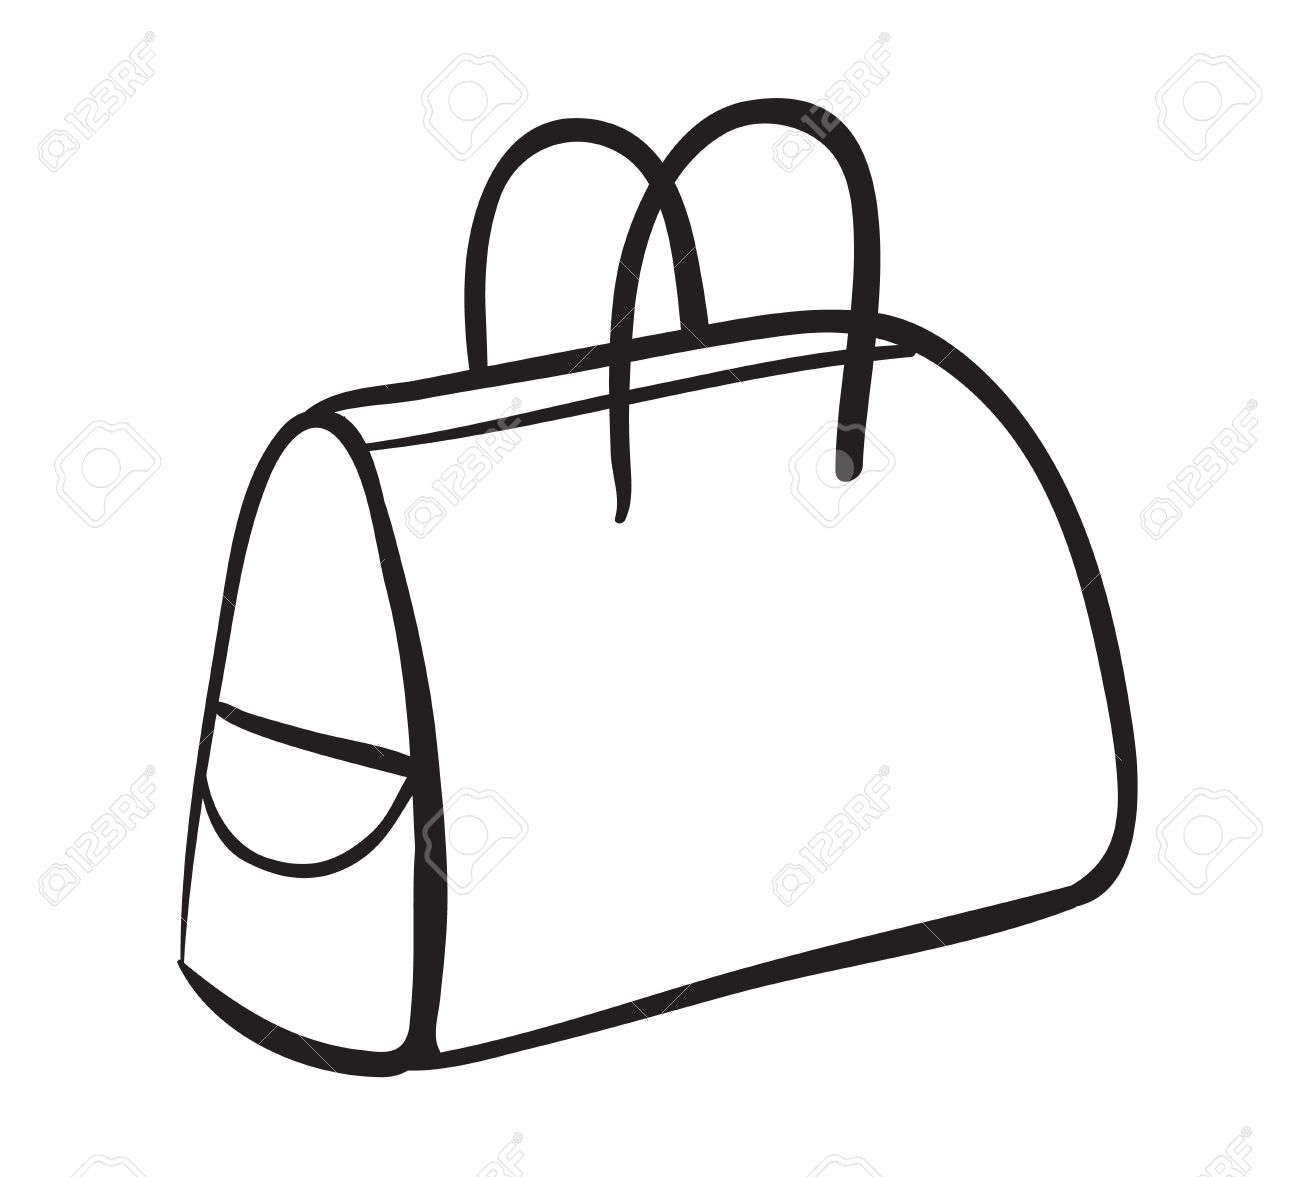 illustration of a purse on a white background royalty free cliparts rh 123rf com purse clipart free purses clipart pinterest